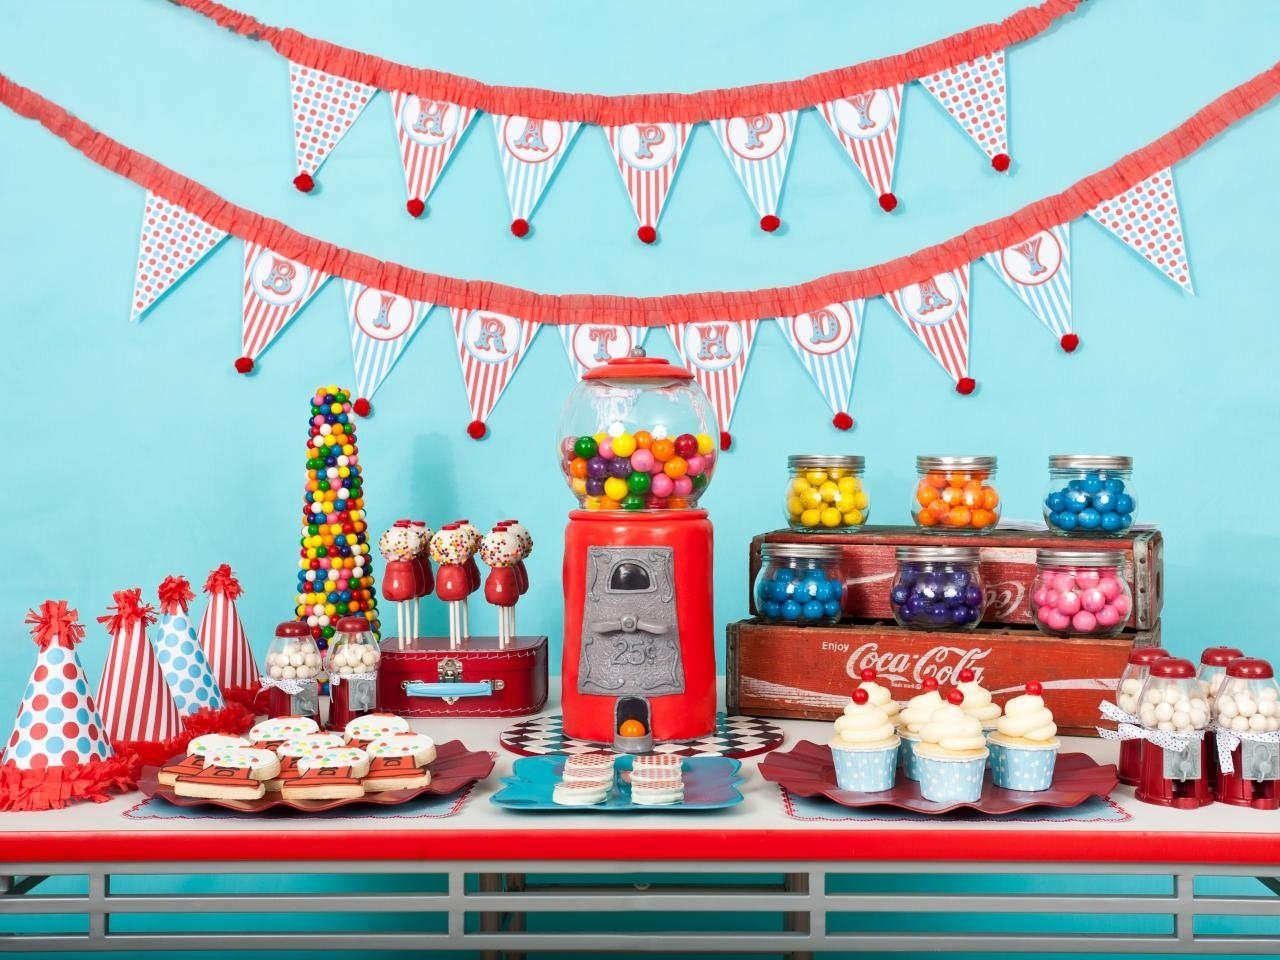 10 Fabulous Ideas For 12 Year Old Birthday Party best boy birthday party theme decorations 12 year old birthday party 3